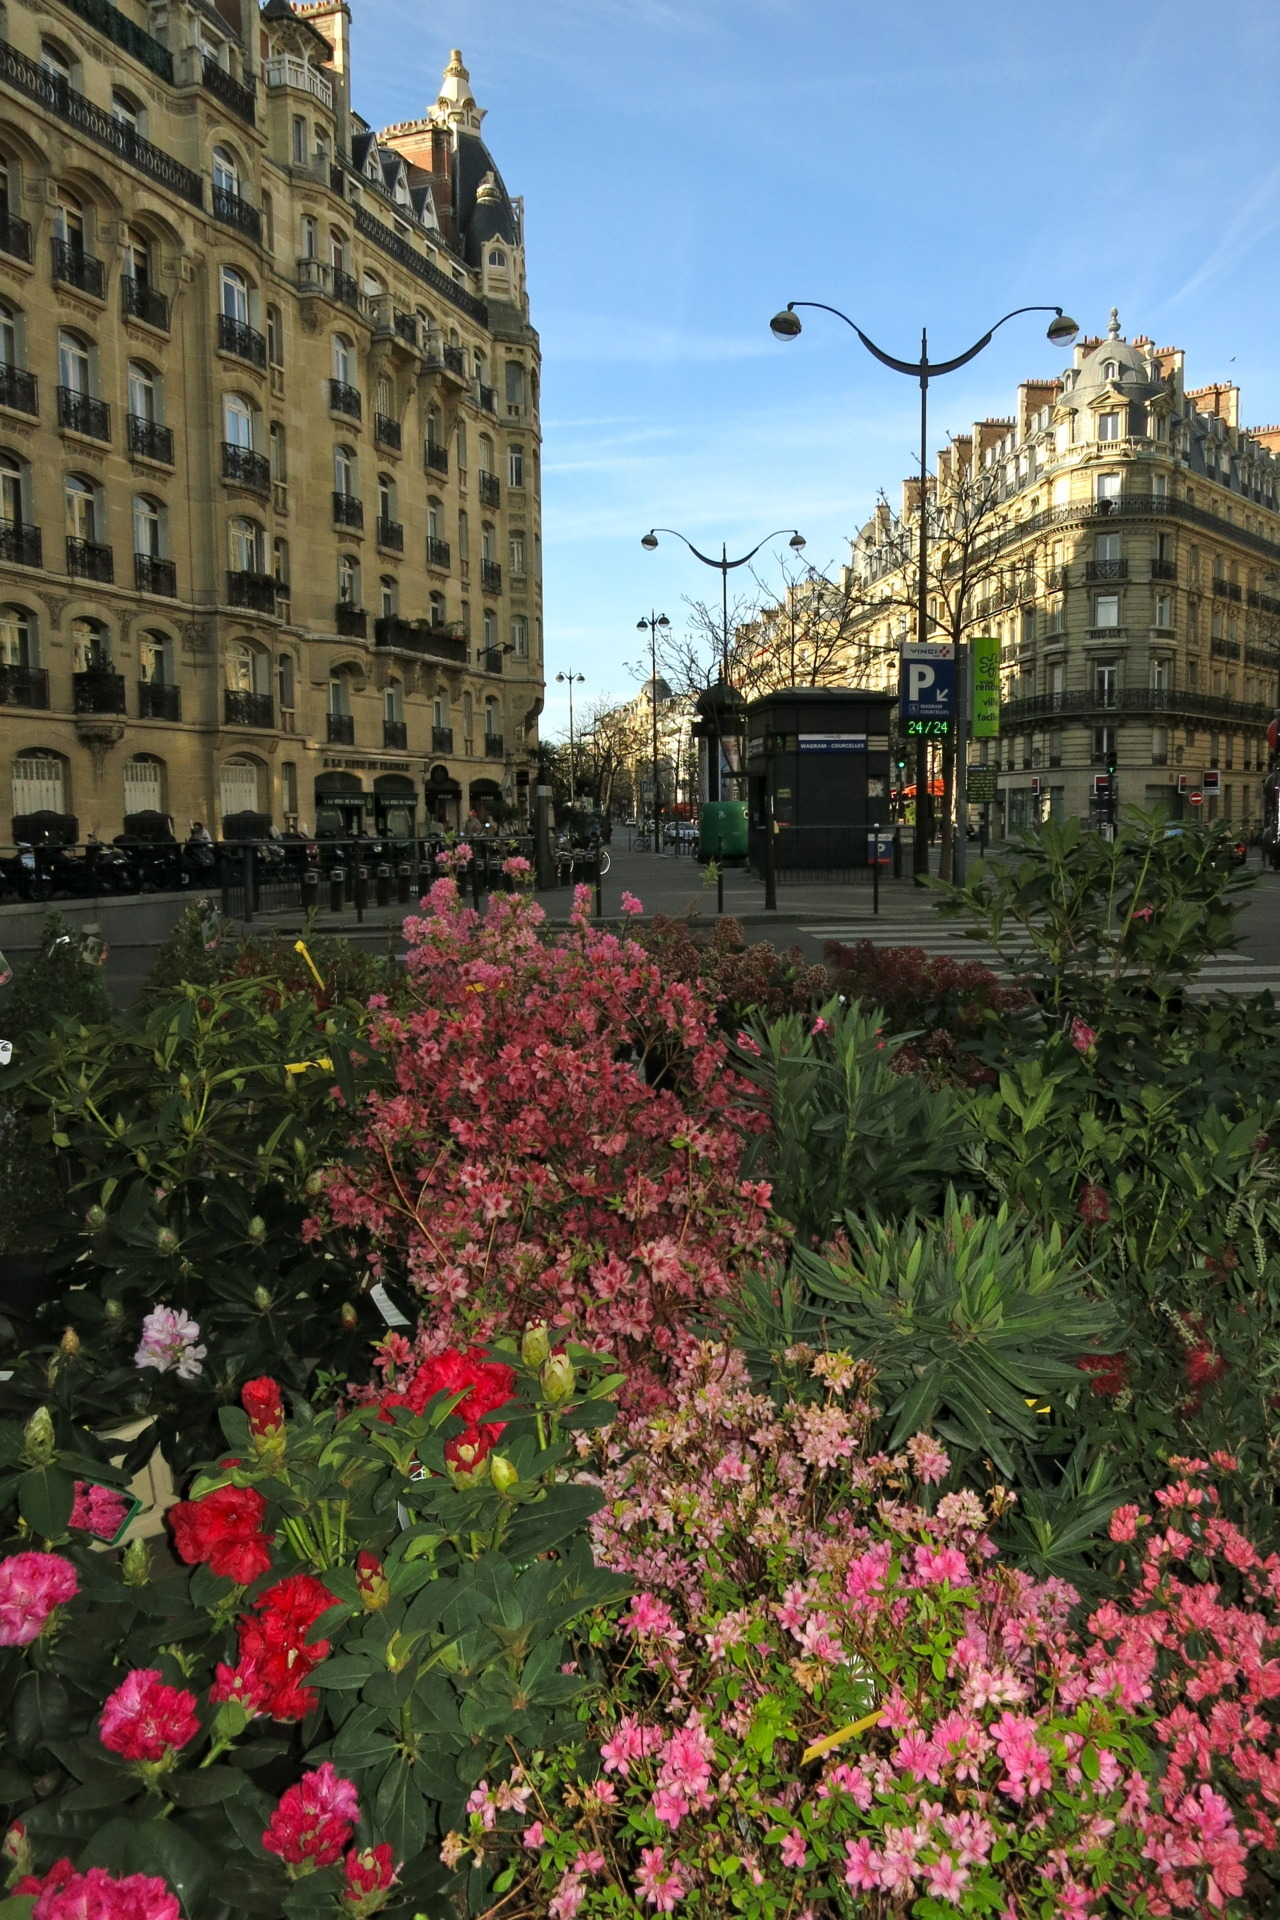 Easter morning at Elyfleurs florist on Avenue Wagram, Paris, France. (Open 24/7, Elyfleurs sells many things one might need as a quick gift in the small hours.)